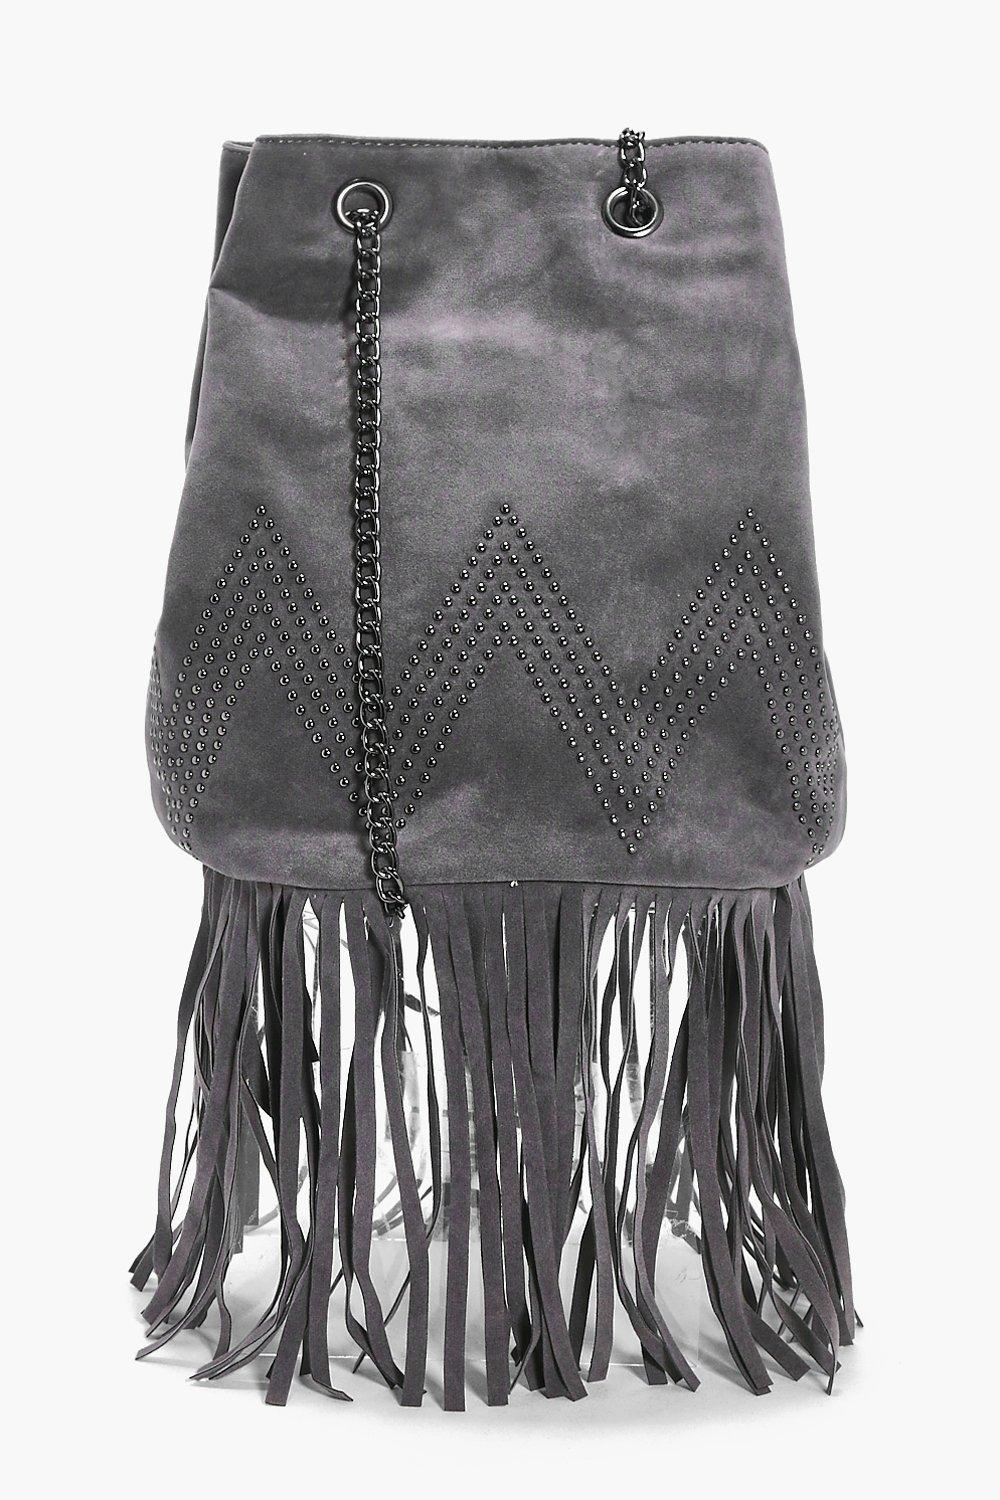 Suedette Fringed Duffle Cross Body Bag - grey - Iv